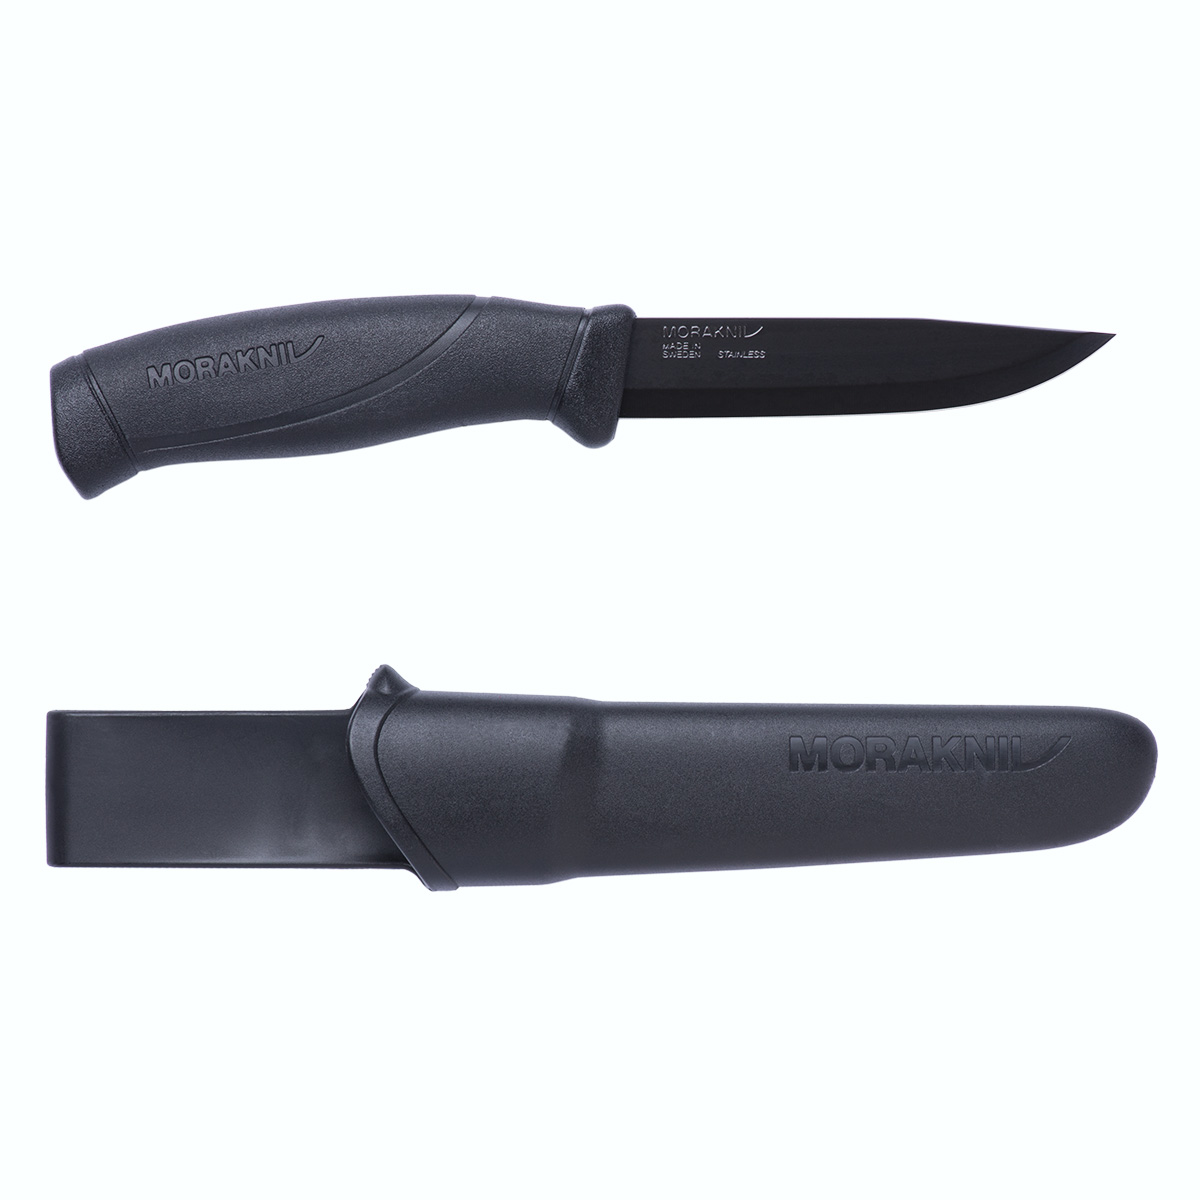 Companion Black Blade Outdoor Sports Knife / Clam